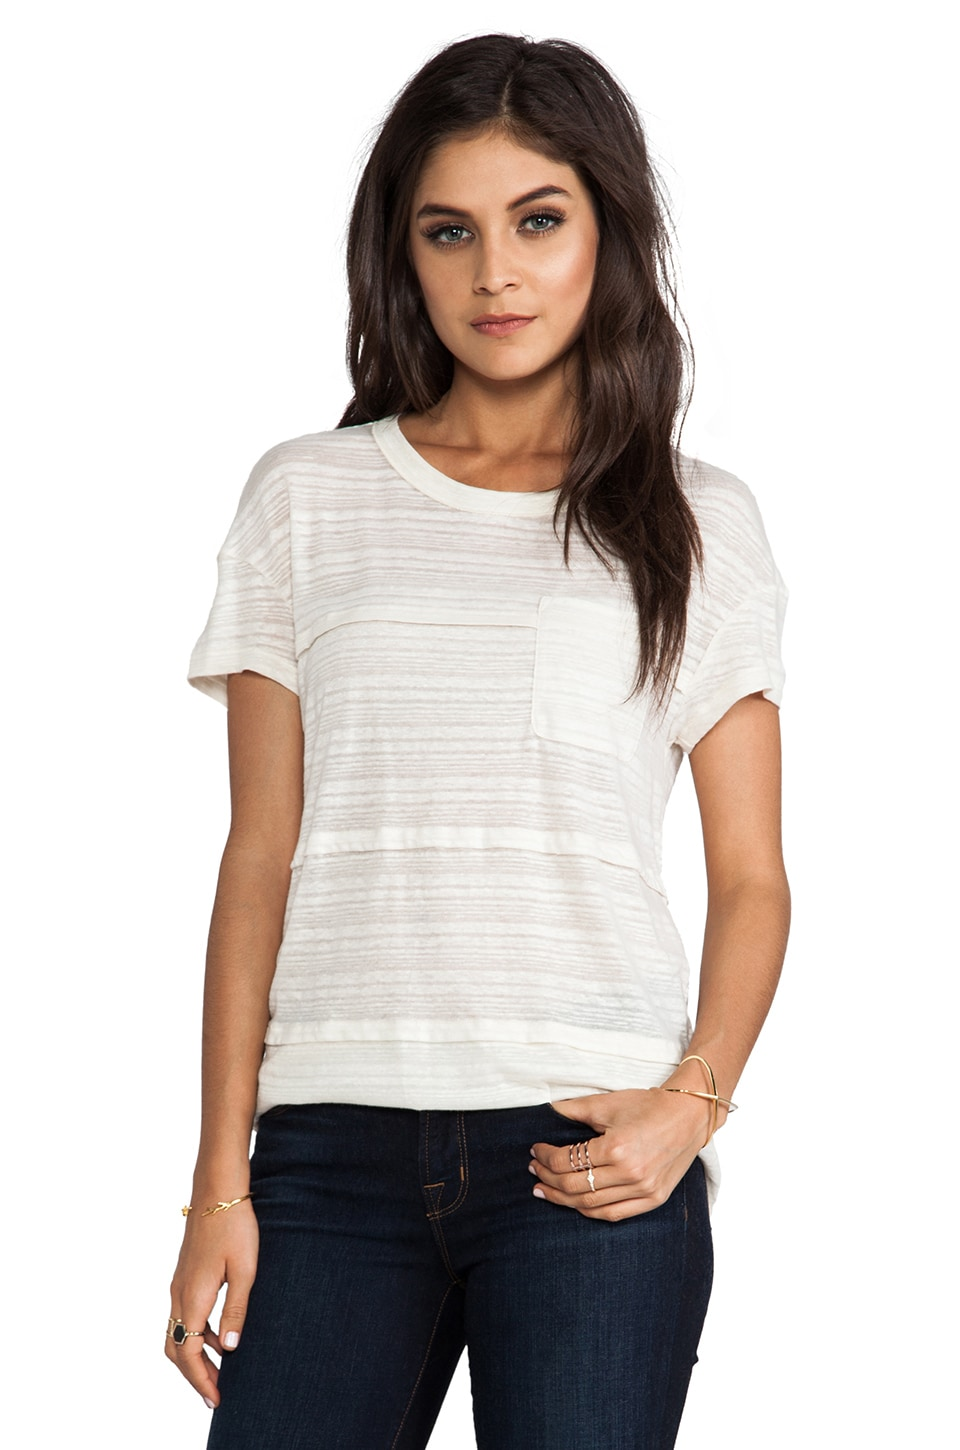 Marc by Marc Jacobs Eloise Ombre Jersey Tee in Antique White